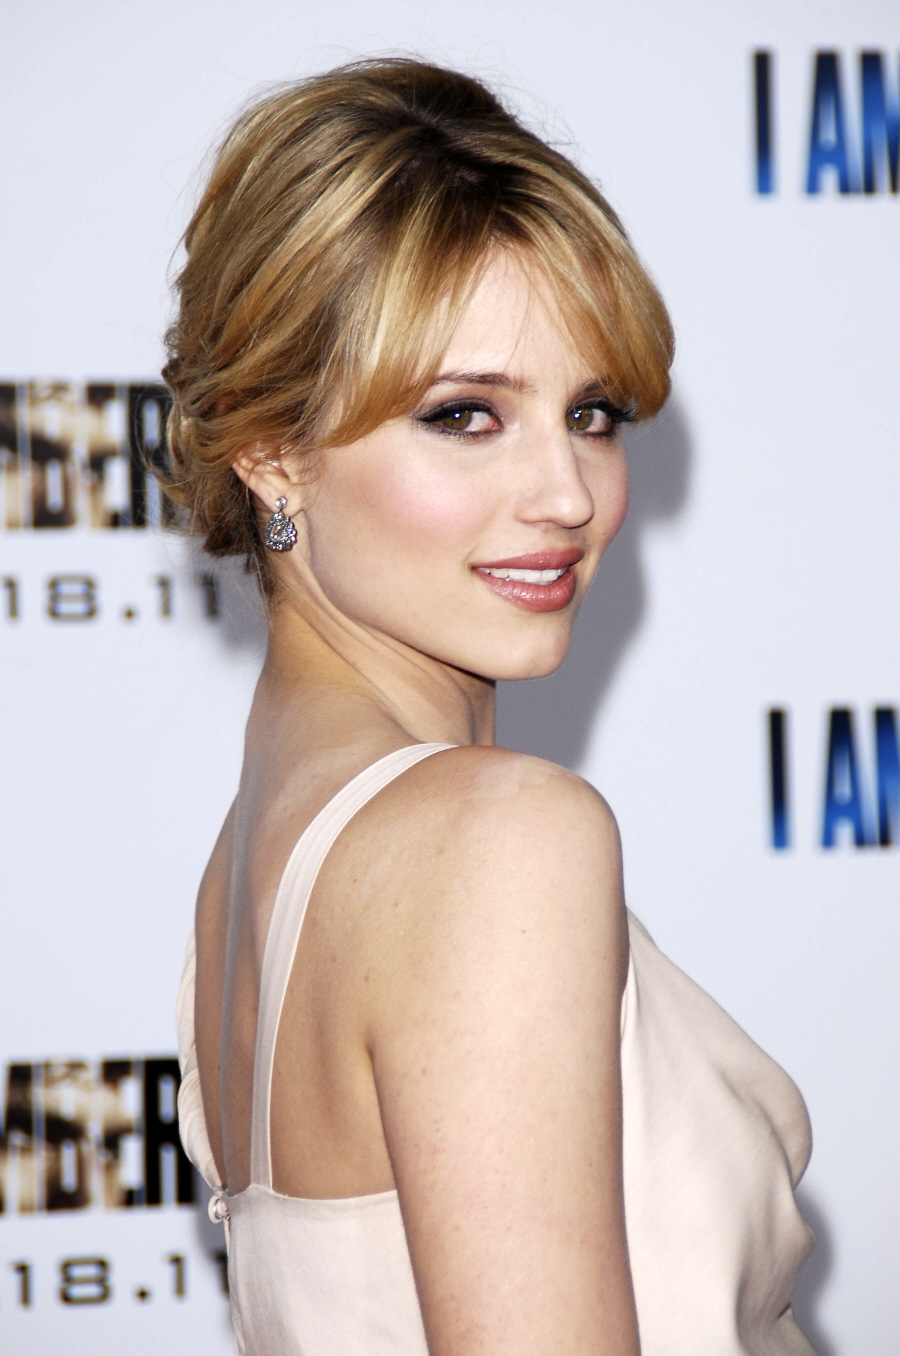 fp 6728769 rij number four 15 57 - Dianna Agron